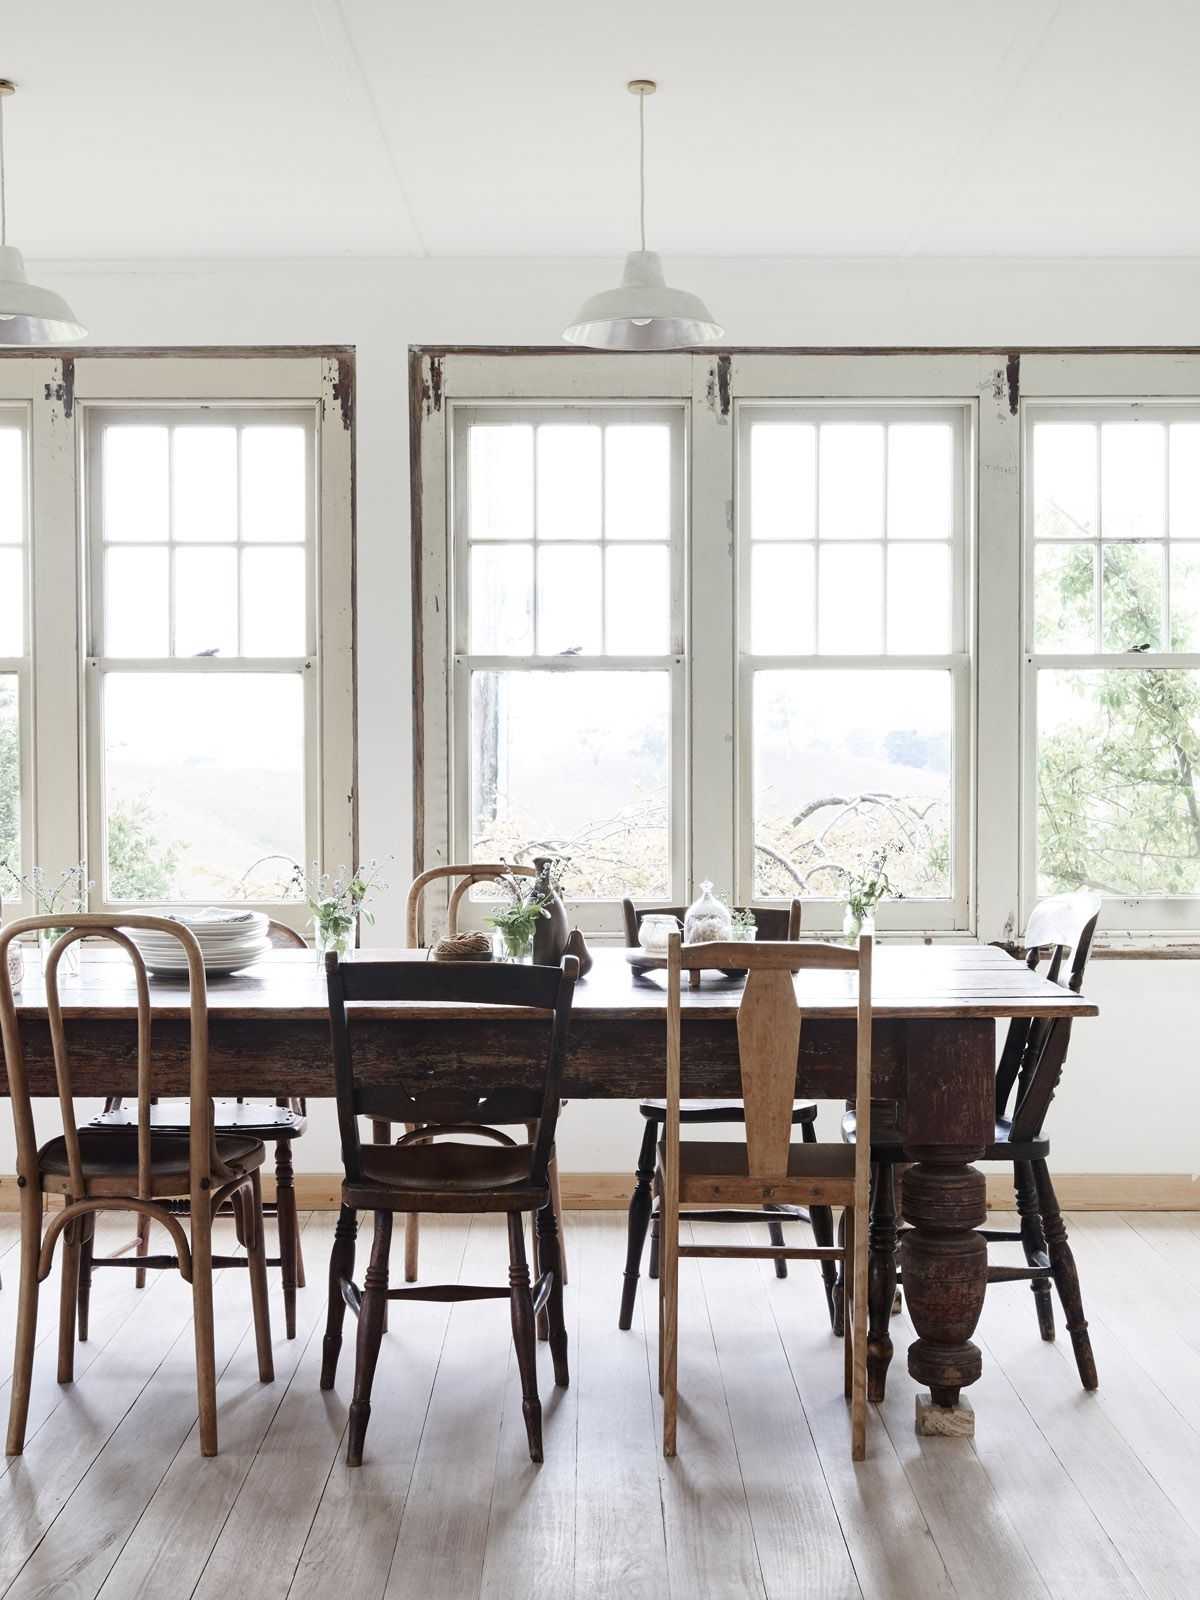 Caira Black 7 Piece Dining Sets With Arm Chairs & Diamond Back Chairs Within Popular Simple Dining Room. Farm Table. Mixed Chairs (View 6 of 16)